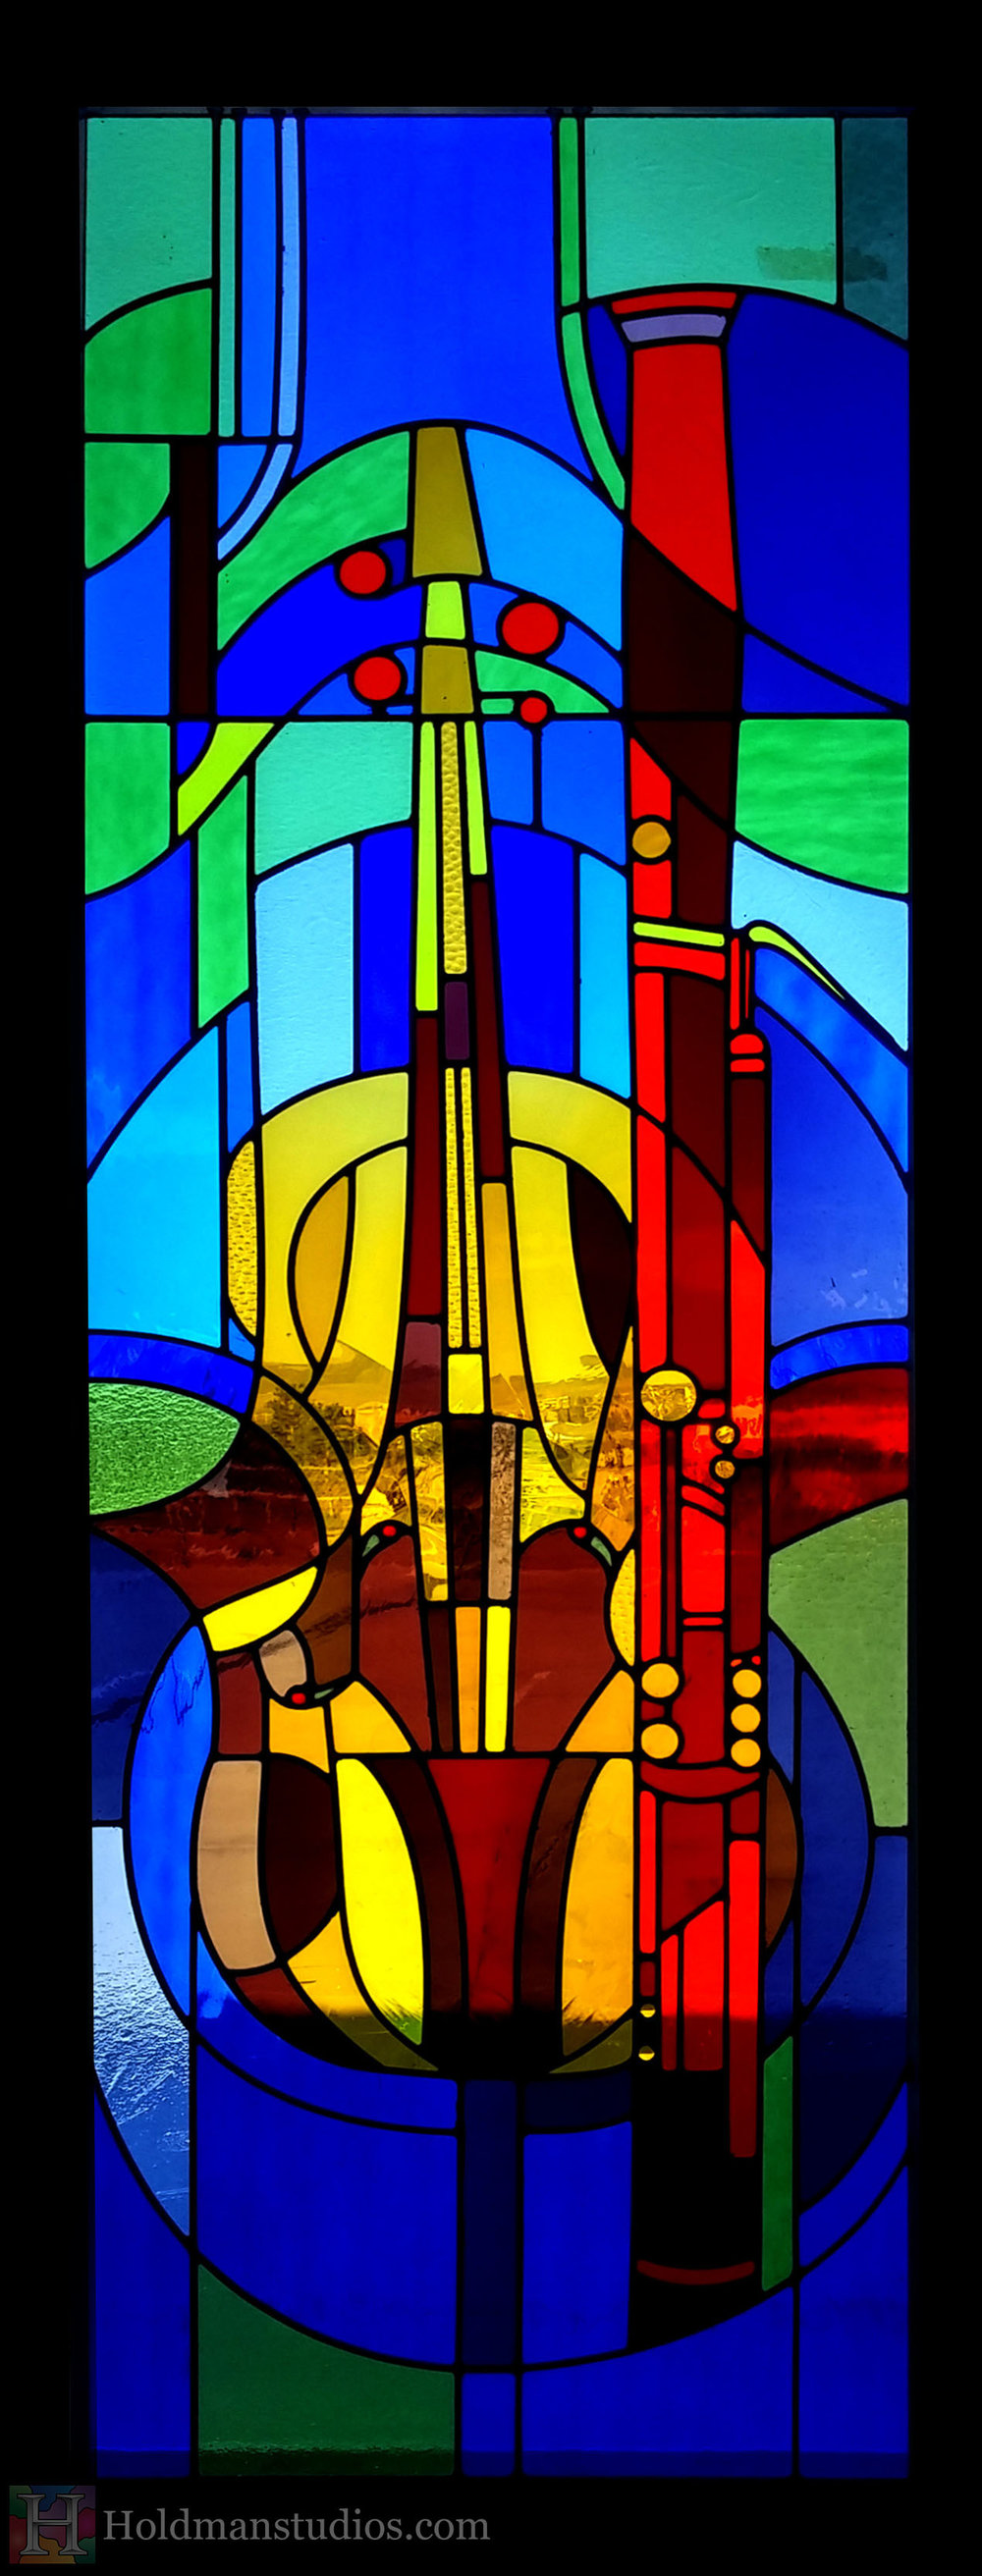 holdman-studios-stained-glass-window-musical-instuments-violin-viola-bassoon-gometric-patterns.jpg